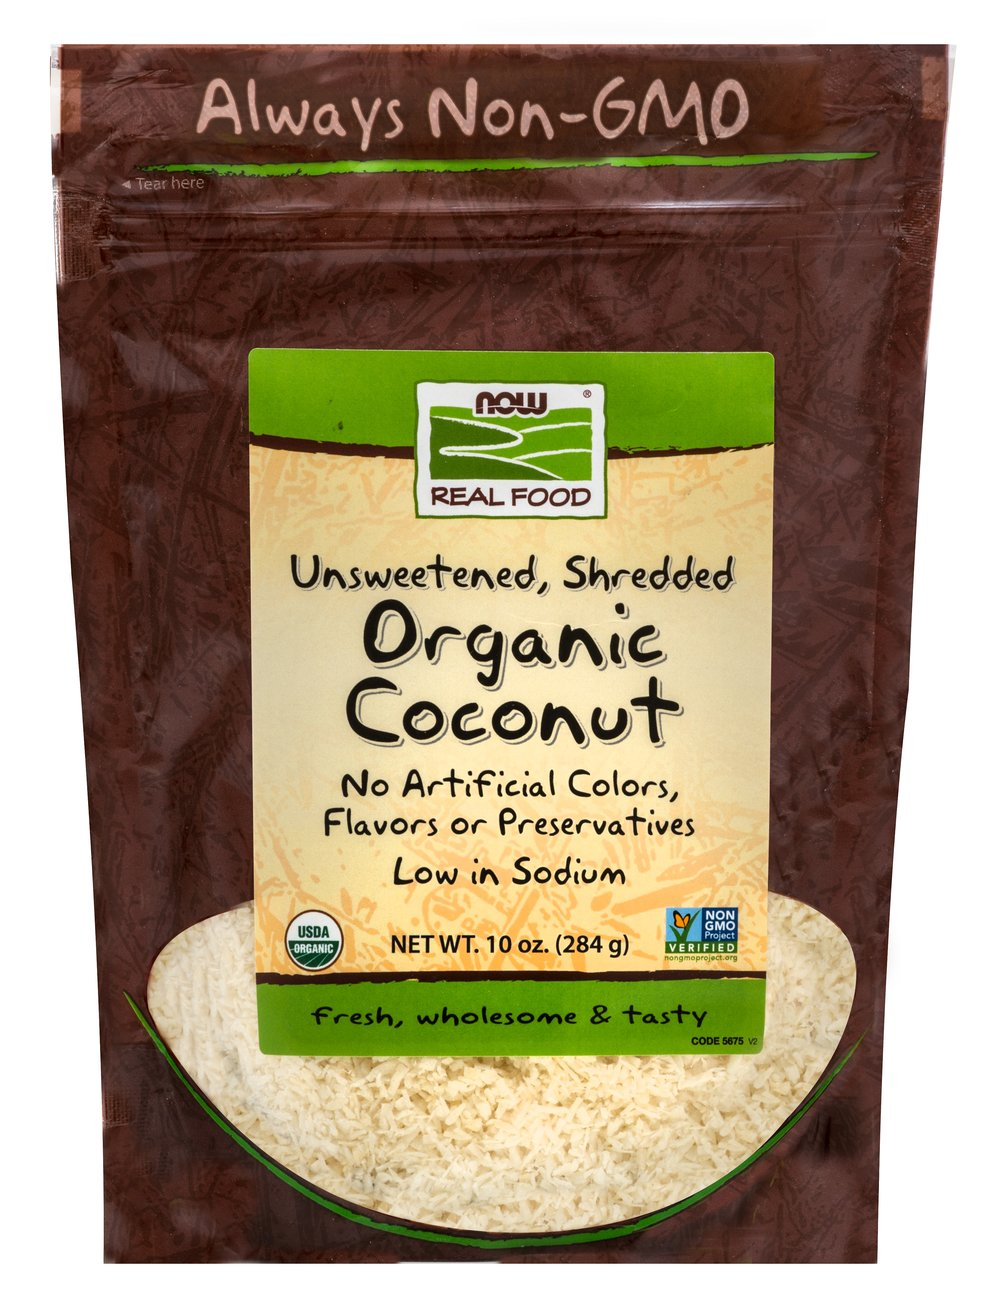 Organic Shredded Coconut <strong>From the Manufacturer: </strong>Naturally Sweet, Now Foods shredded coconut is perfect for baking, as a dessert or in granola. 10 oz Bag  $7.99